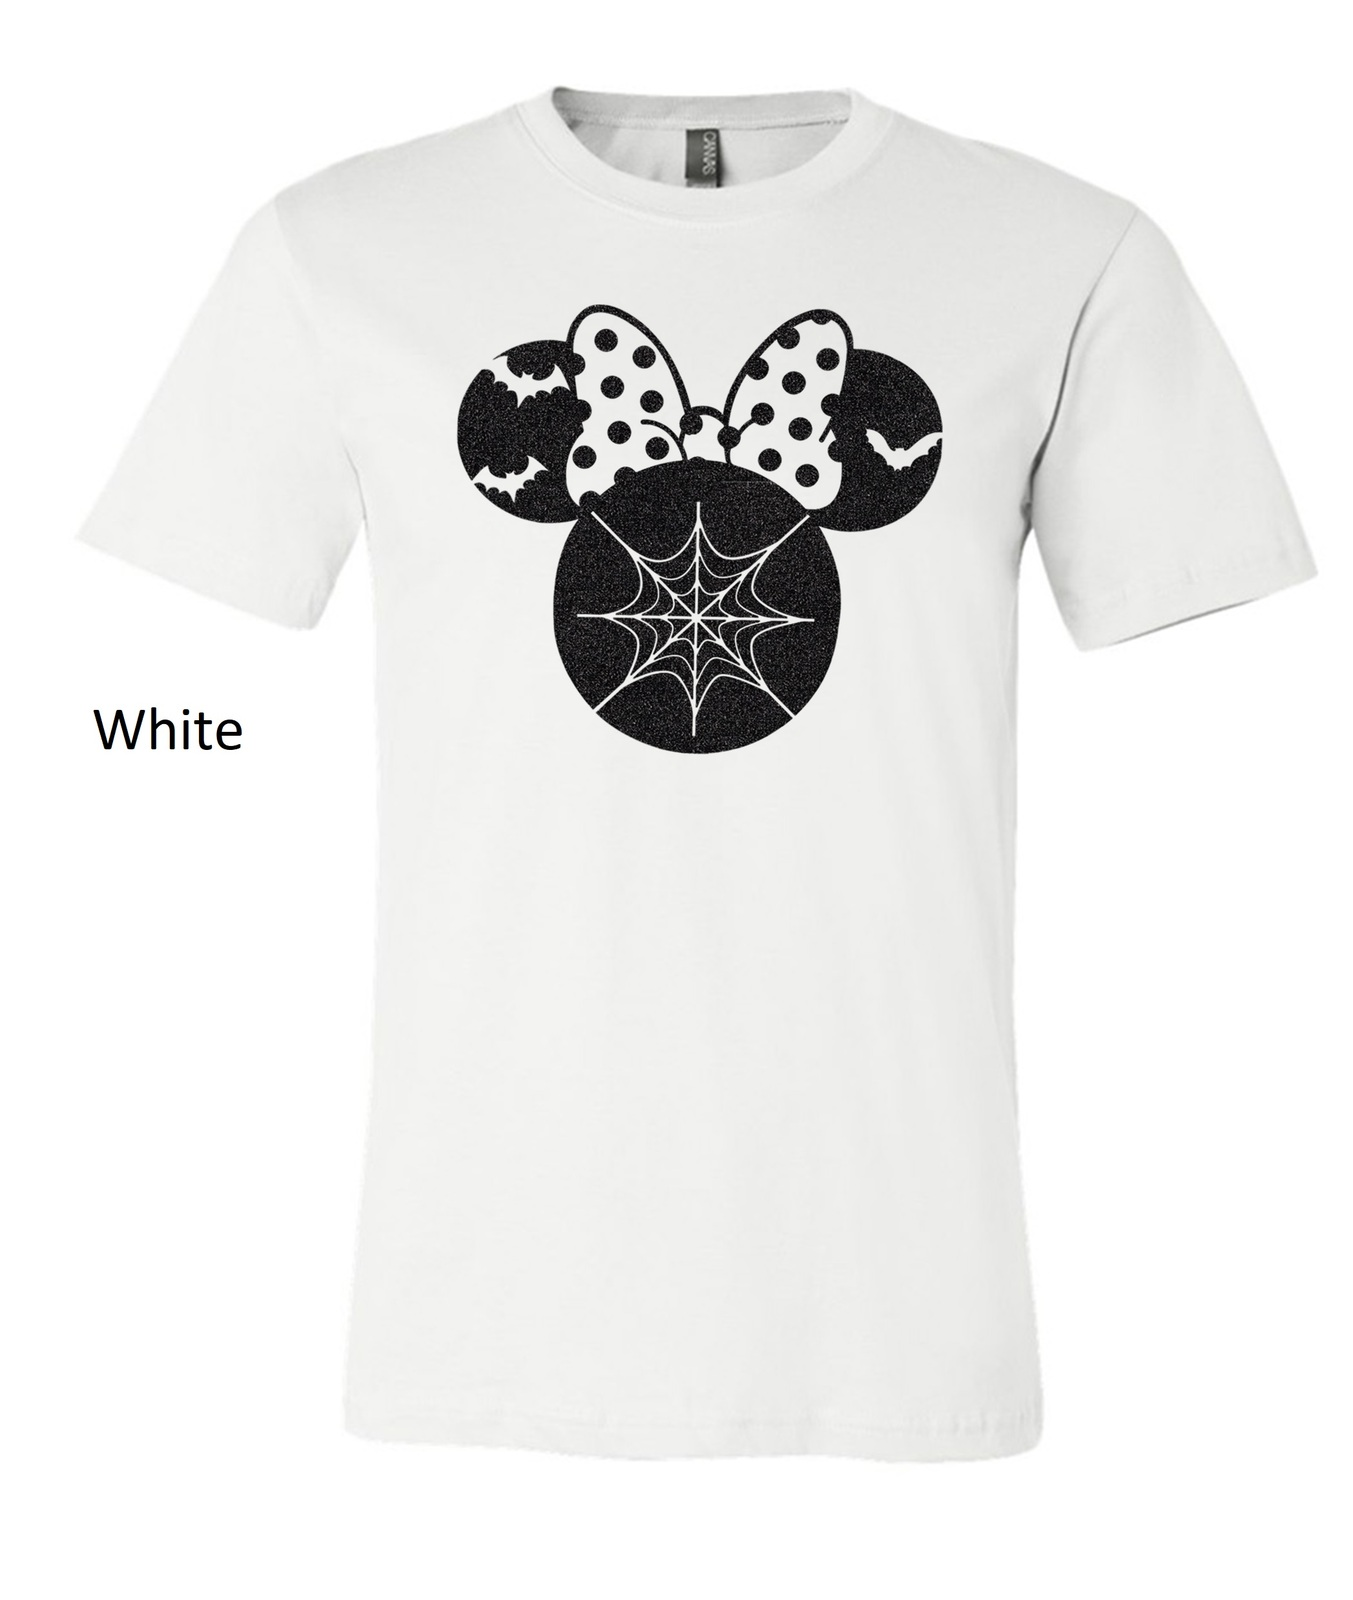 Halloween Minnie Mouse t shirt, minnie mouse glittered artwork design top tee image 11